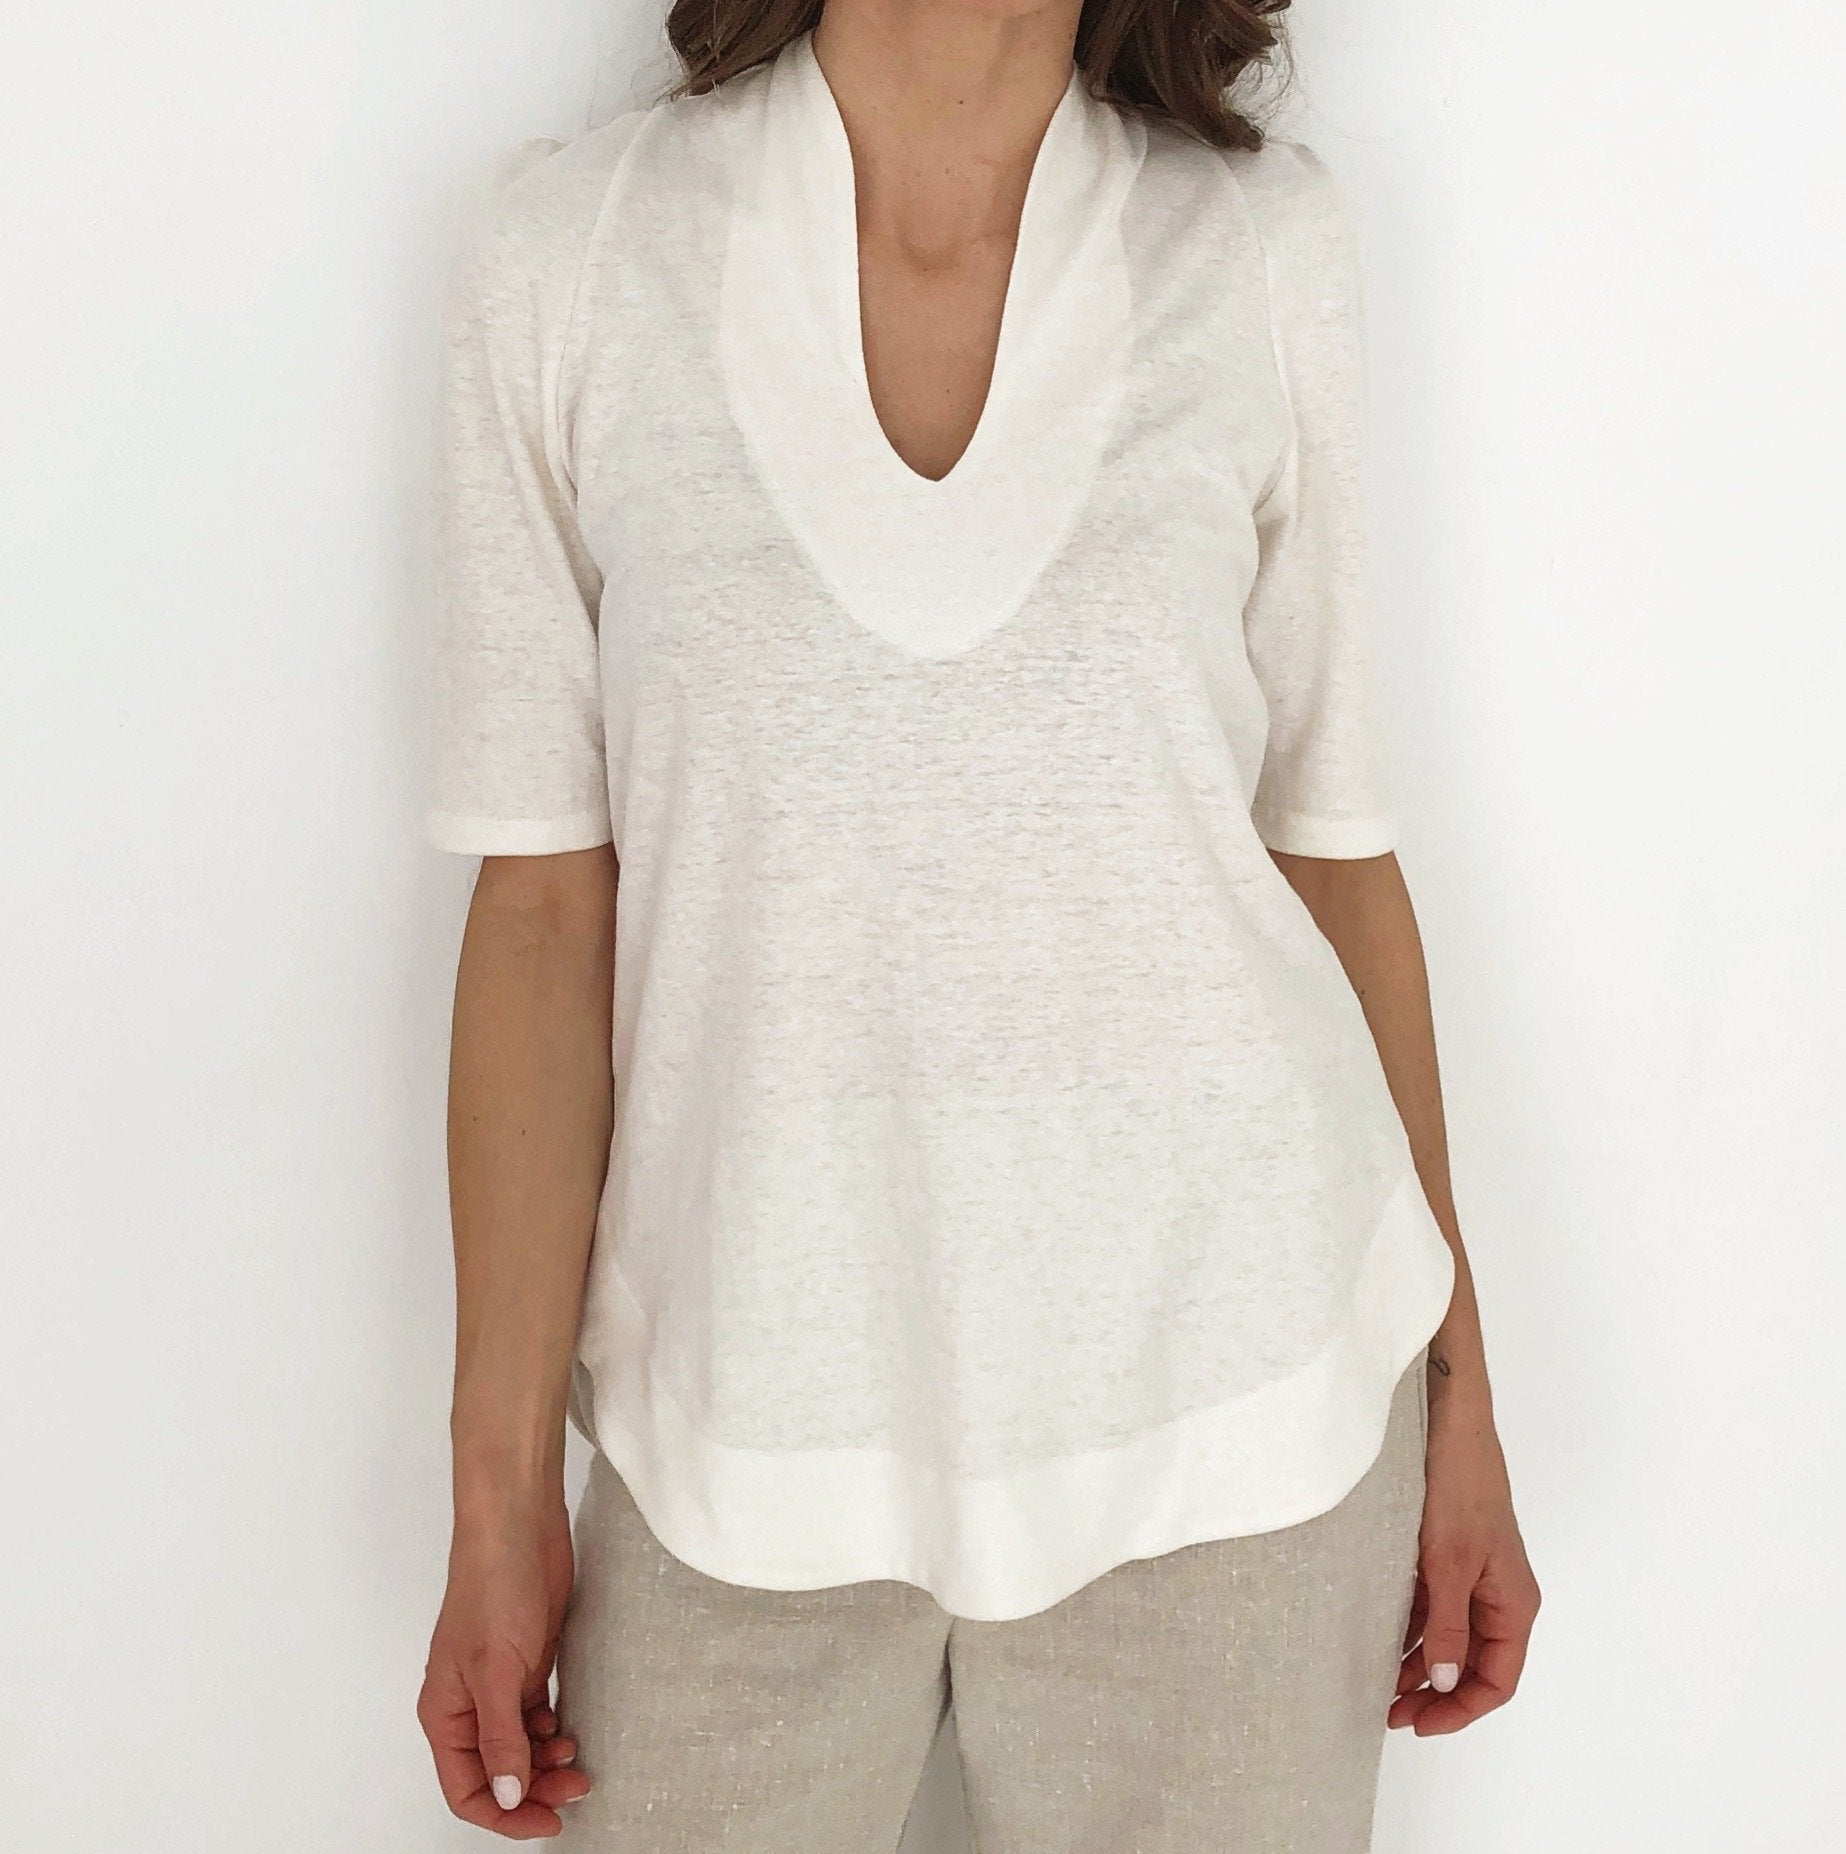 The Harmony Tunic - Mid Sleeve - Hemp and Organic Cotton